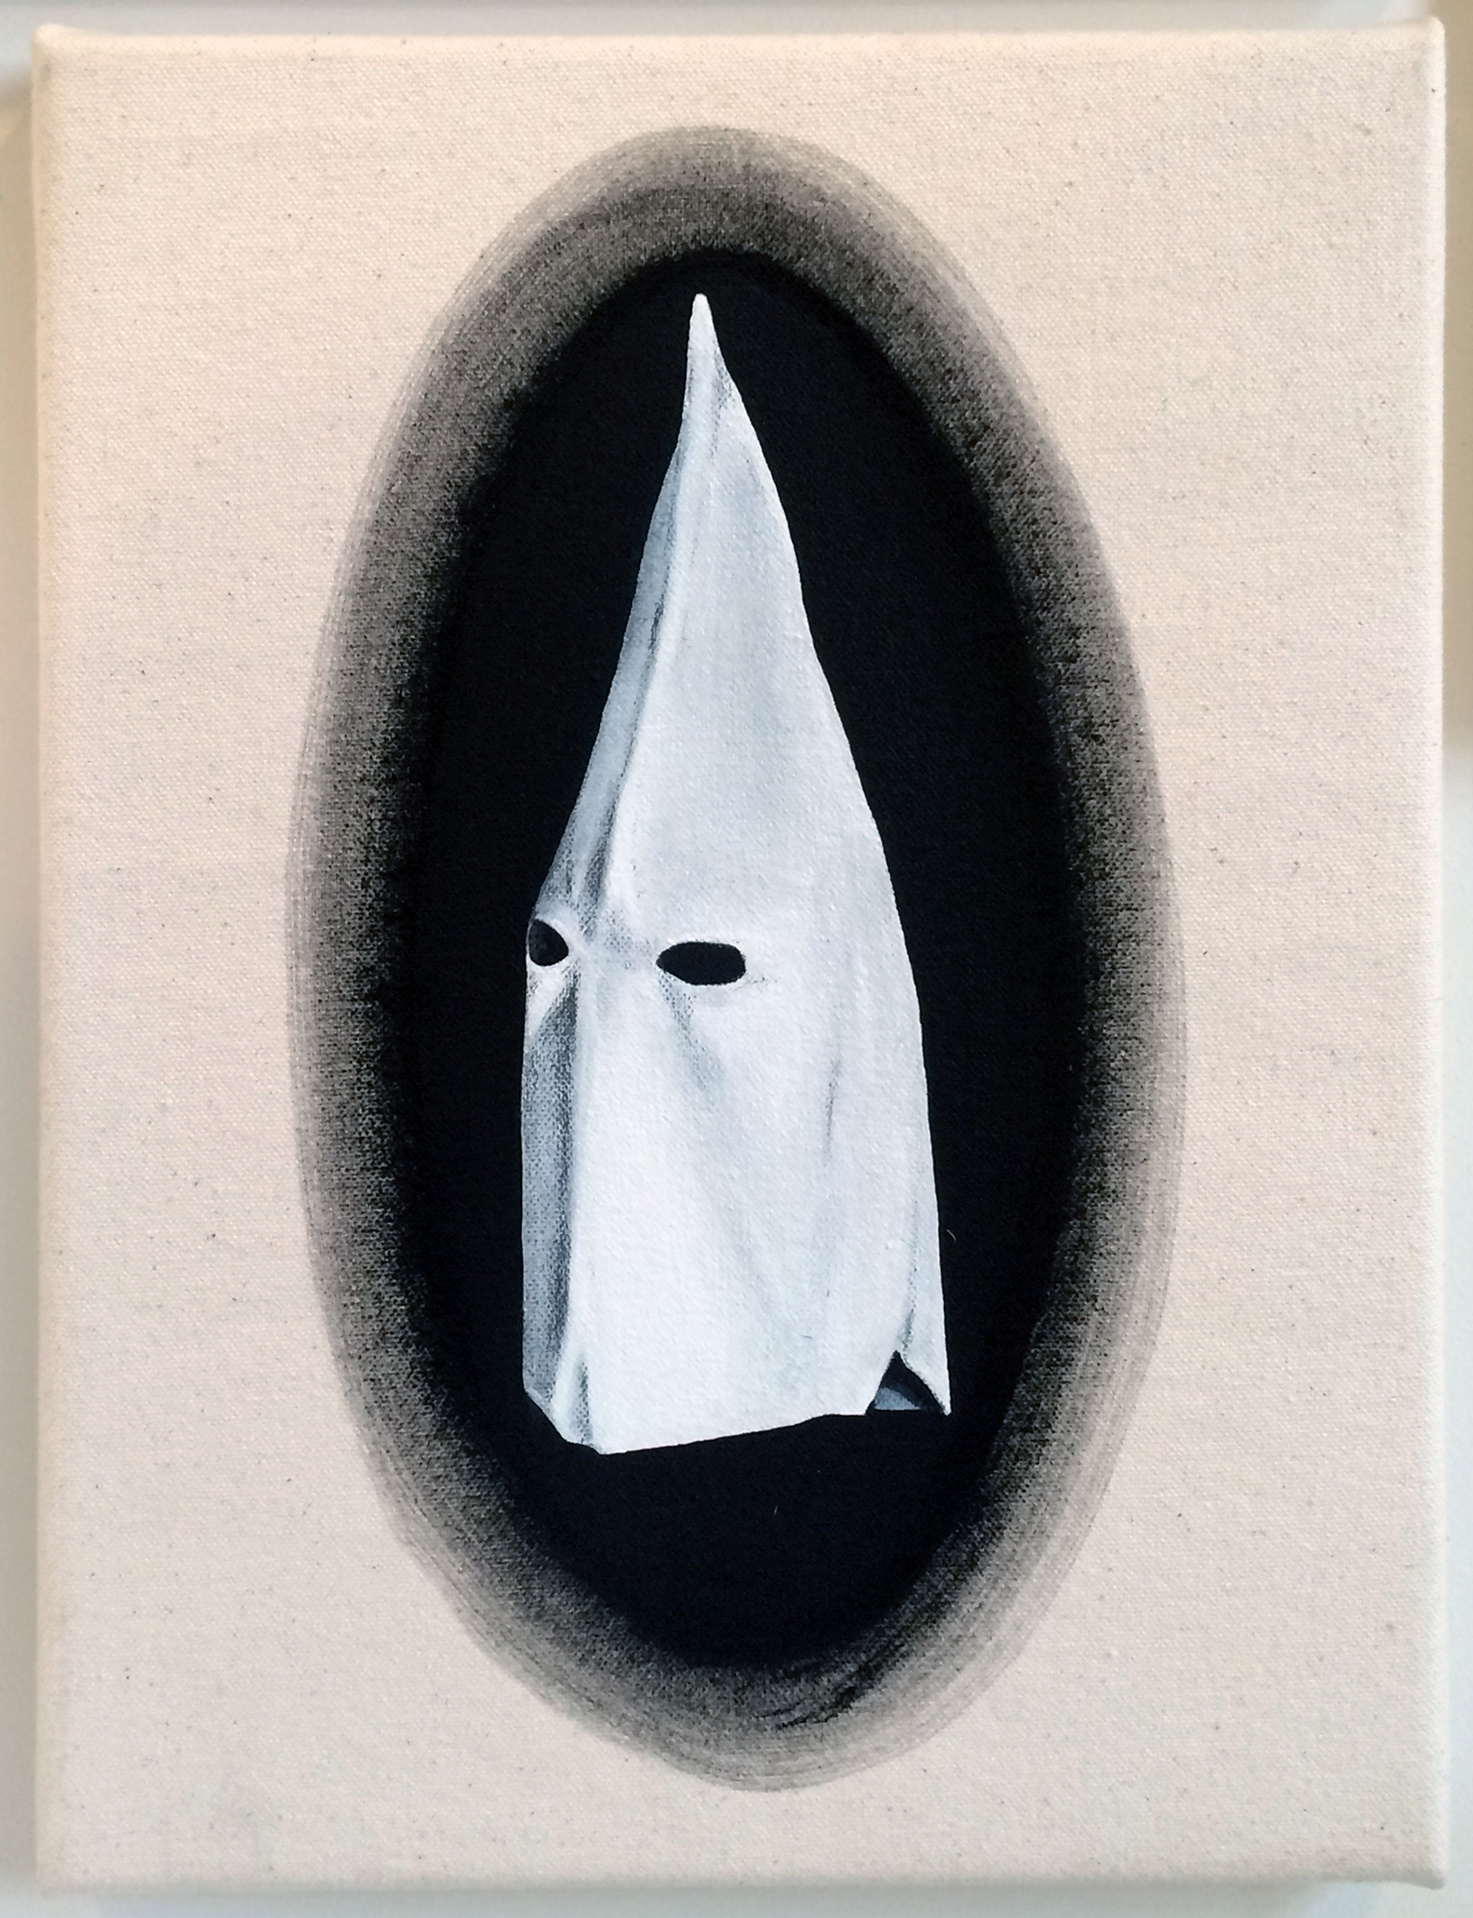 from  Atlas:  Hood (or Book Cover Ghost), 2016 Gesso on canvas 9 x 12 inches